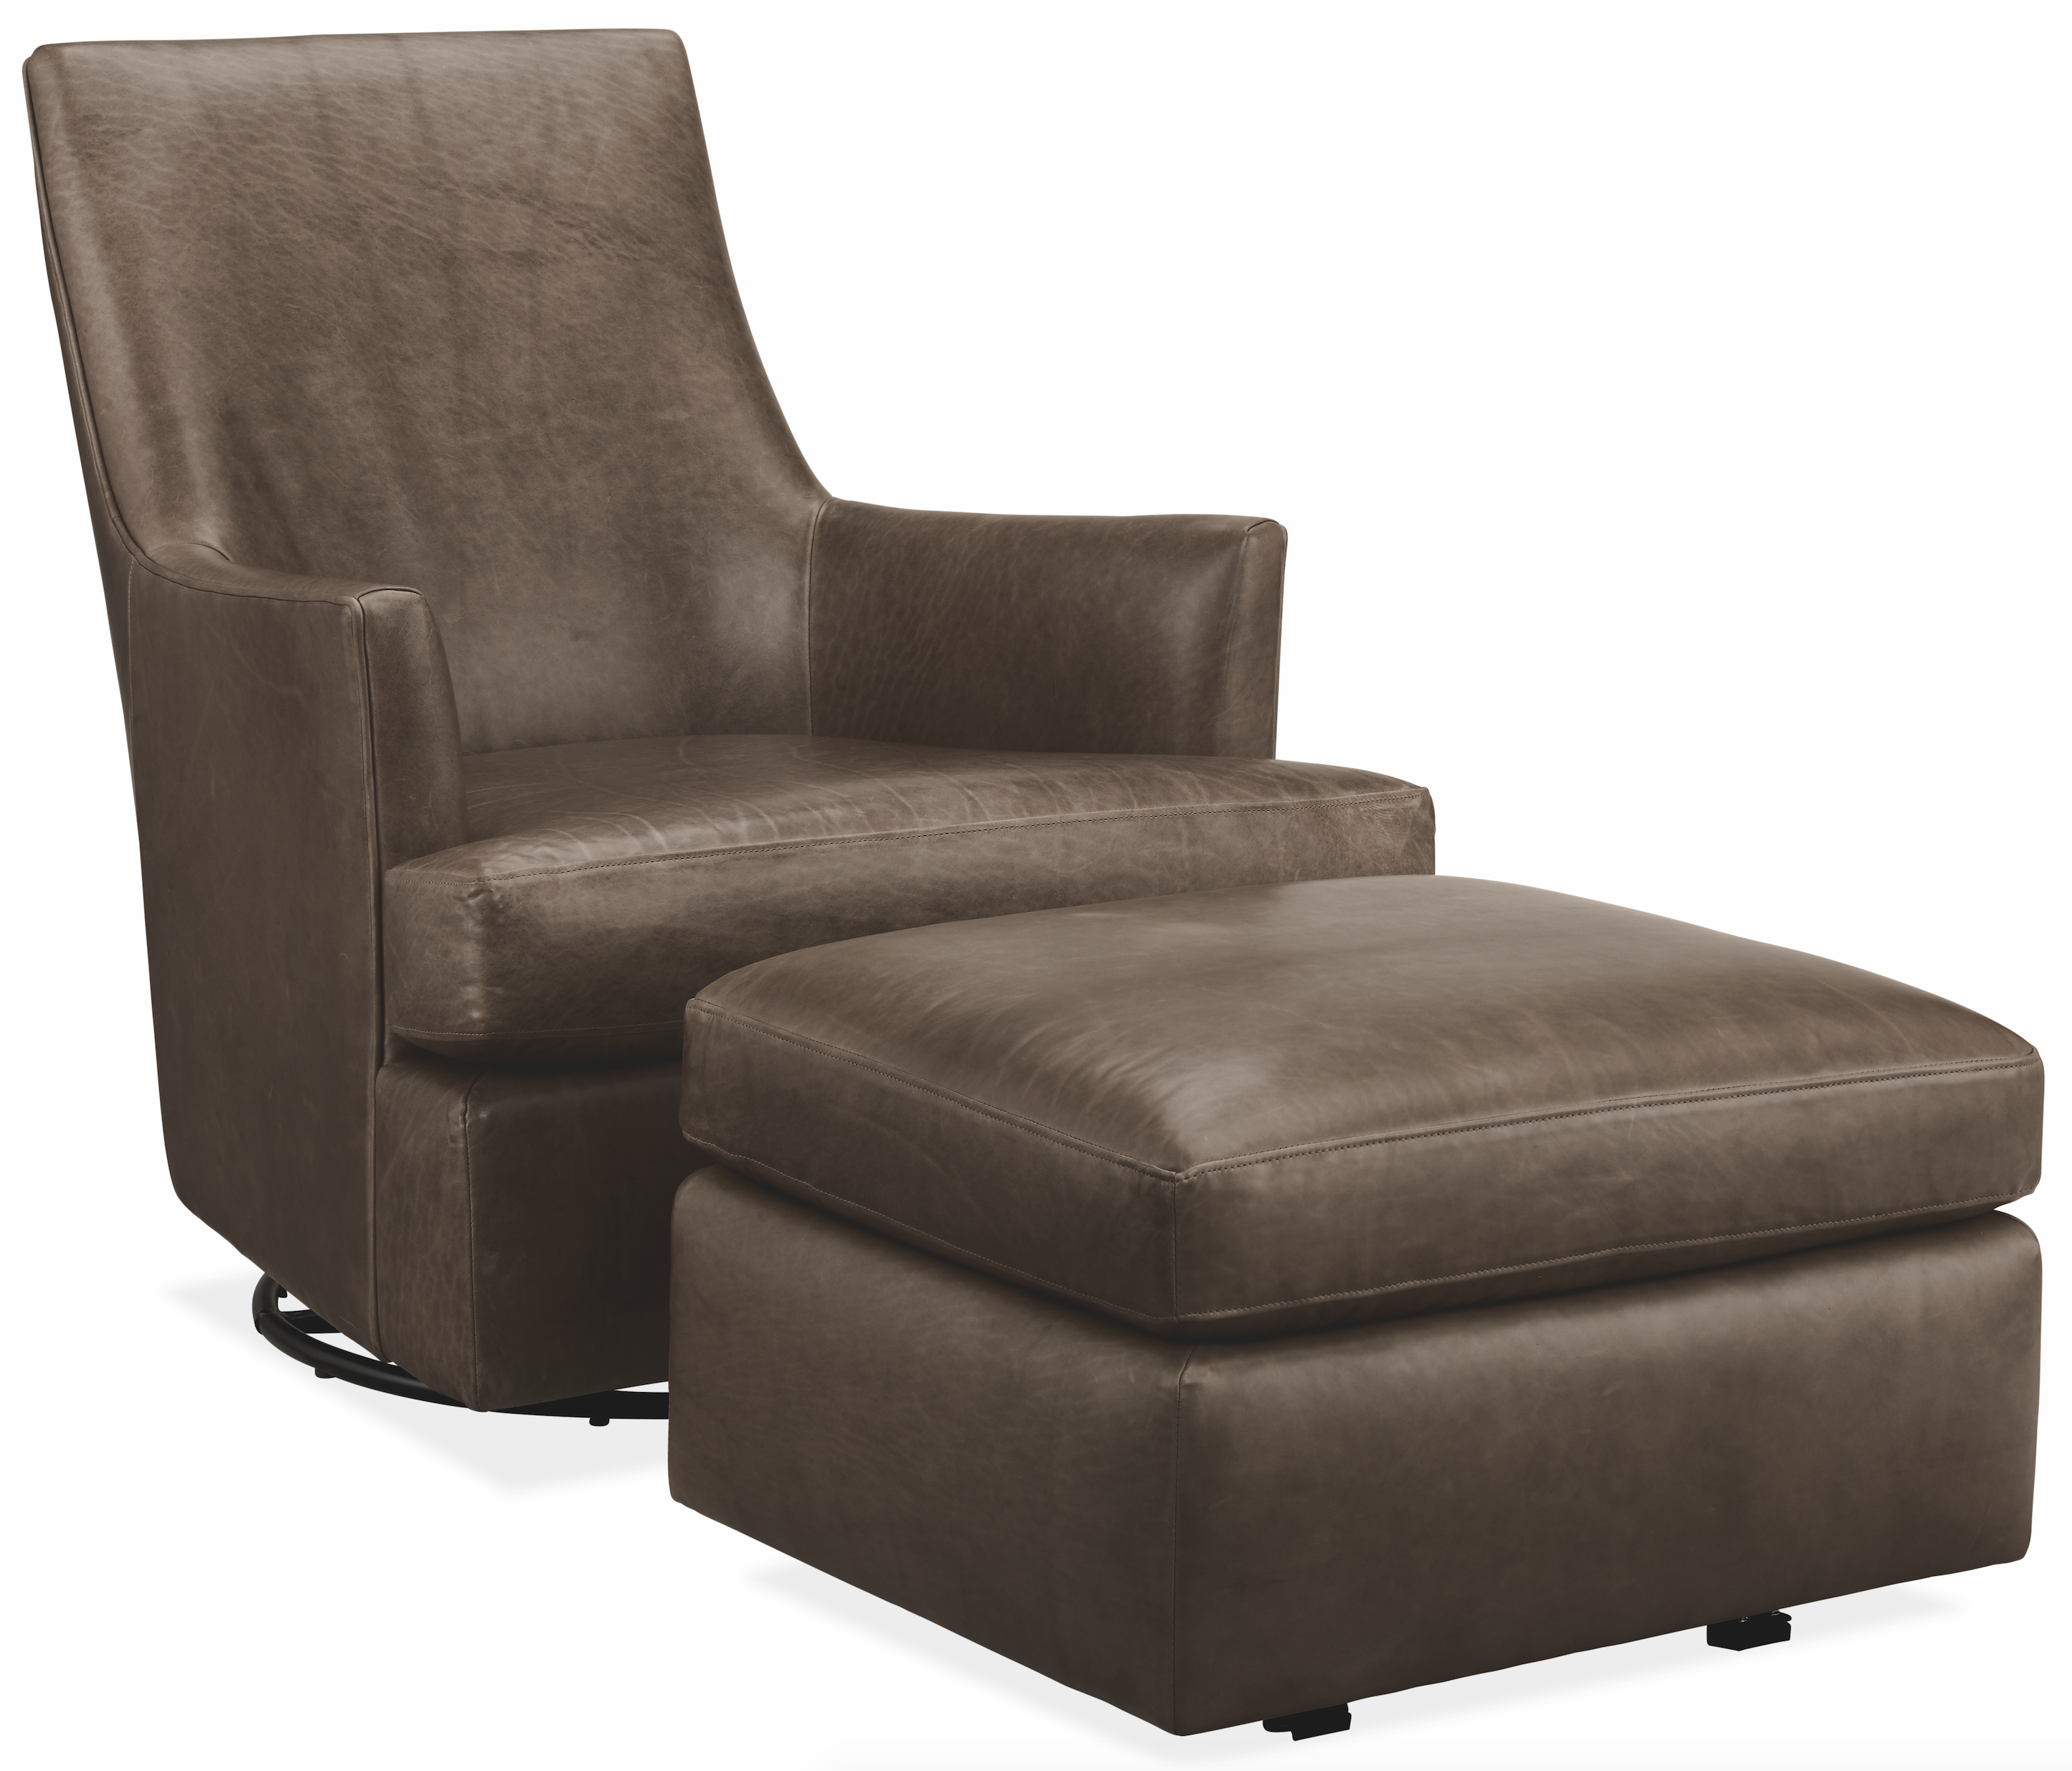 Nadine Leather Chairs Ottomans Modern Accent Lounge Chairs Modern Living Room Furniture Room Board In 2020 Modern Furniture Living Room Modern Lounge Chairs Chair